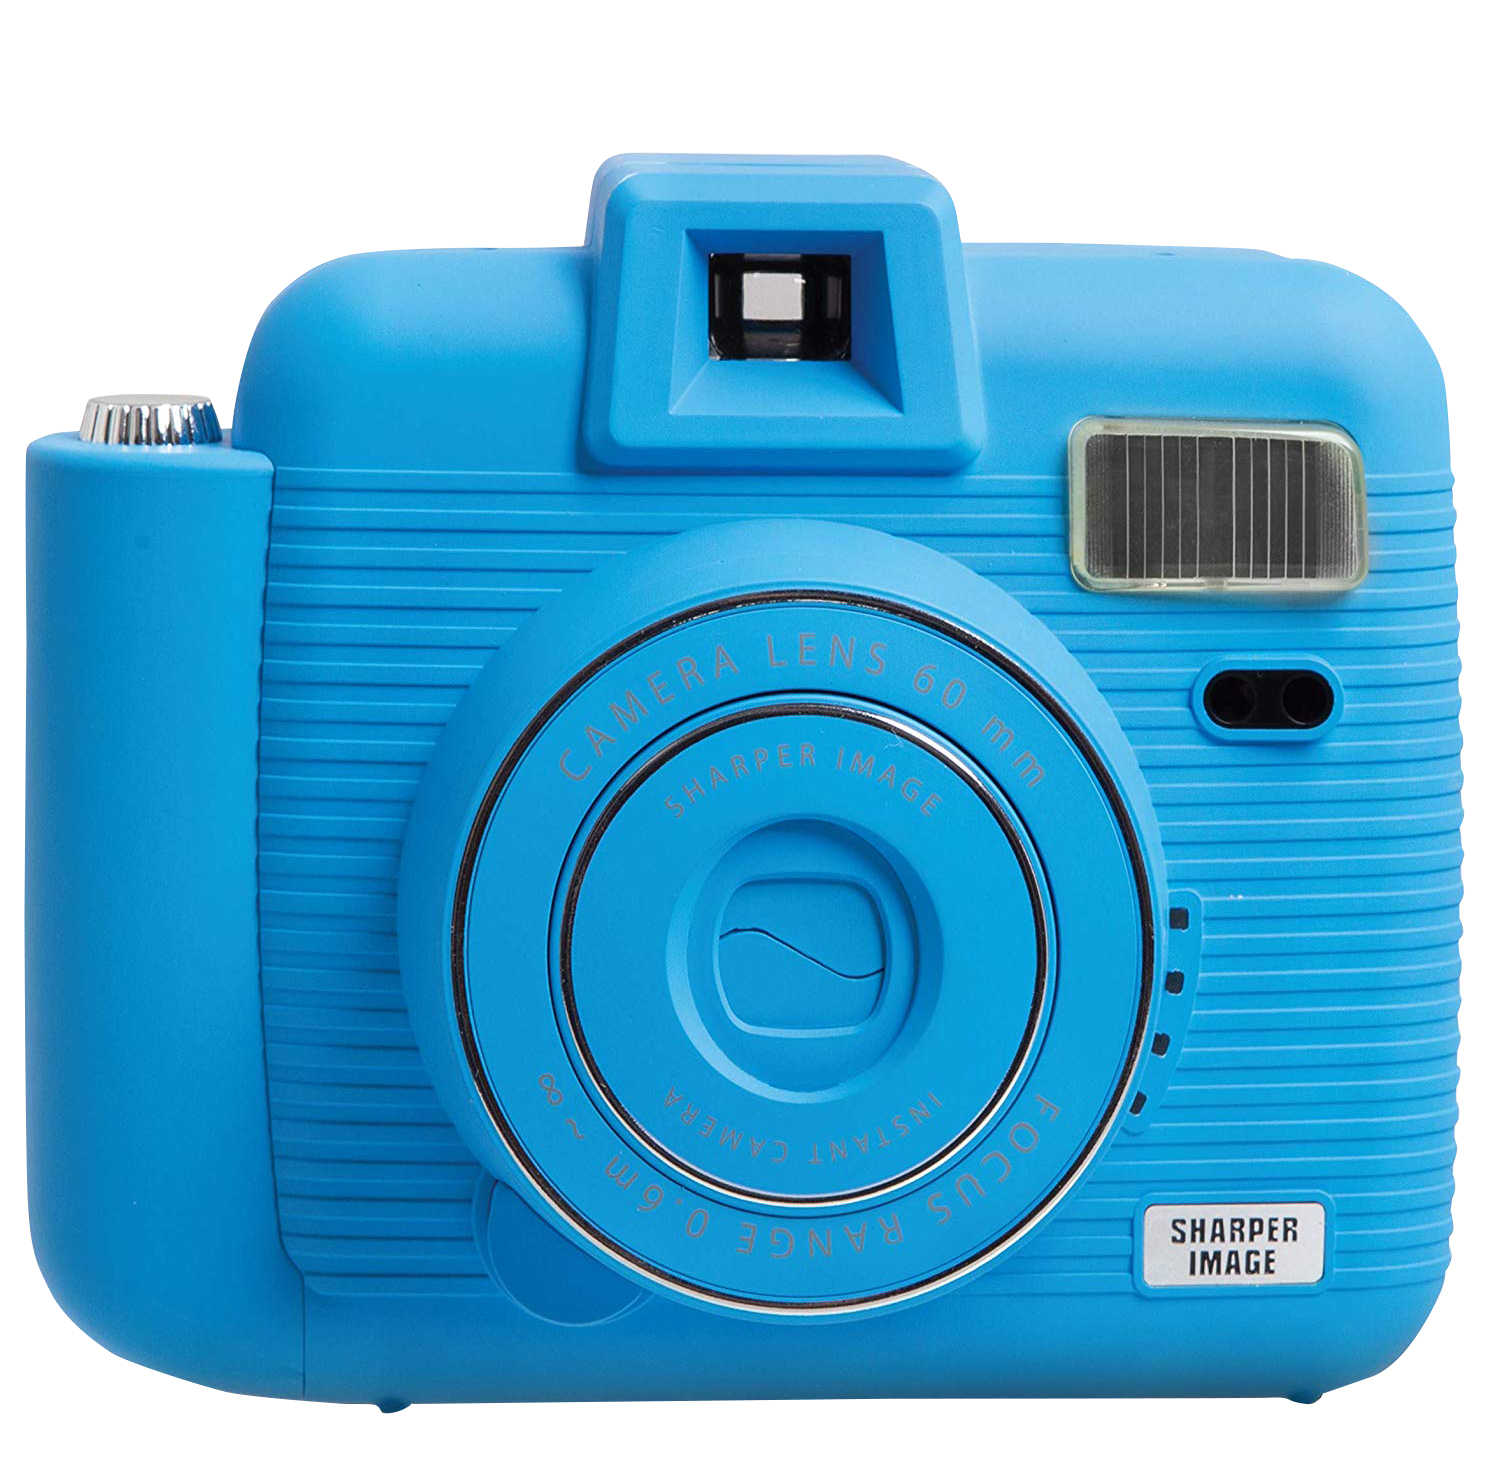 Sharper Image Instant Camera Kit (Compatible with Fujifilm Instax Mini Film) – Blue